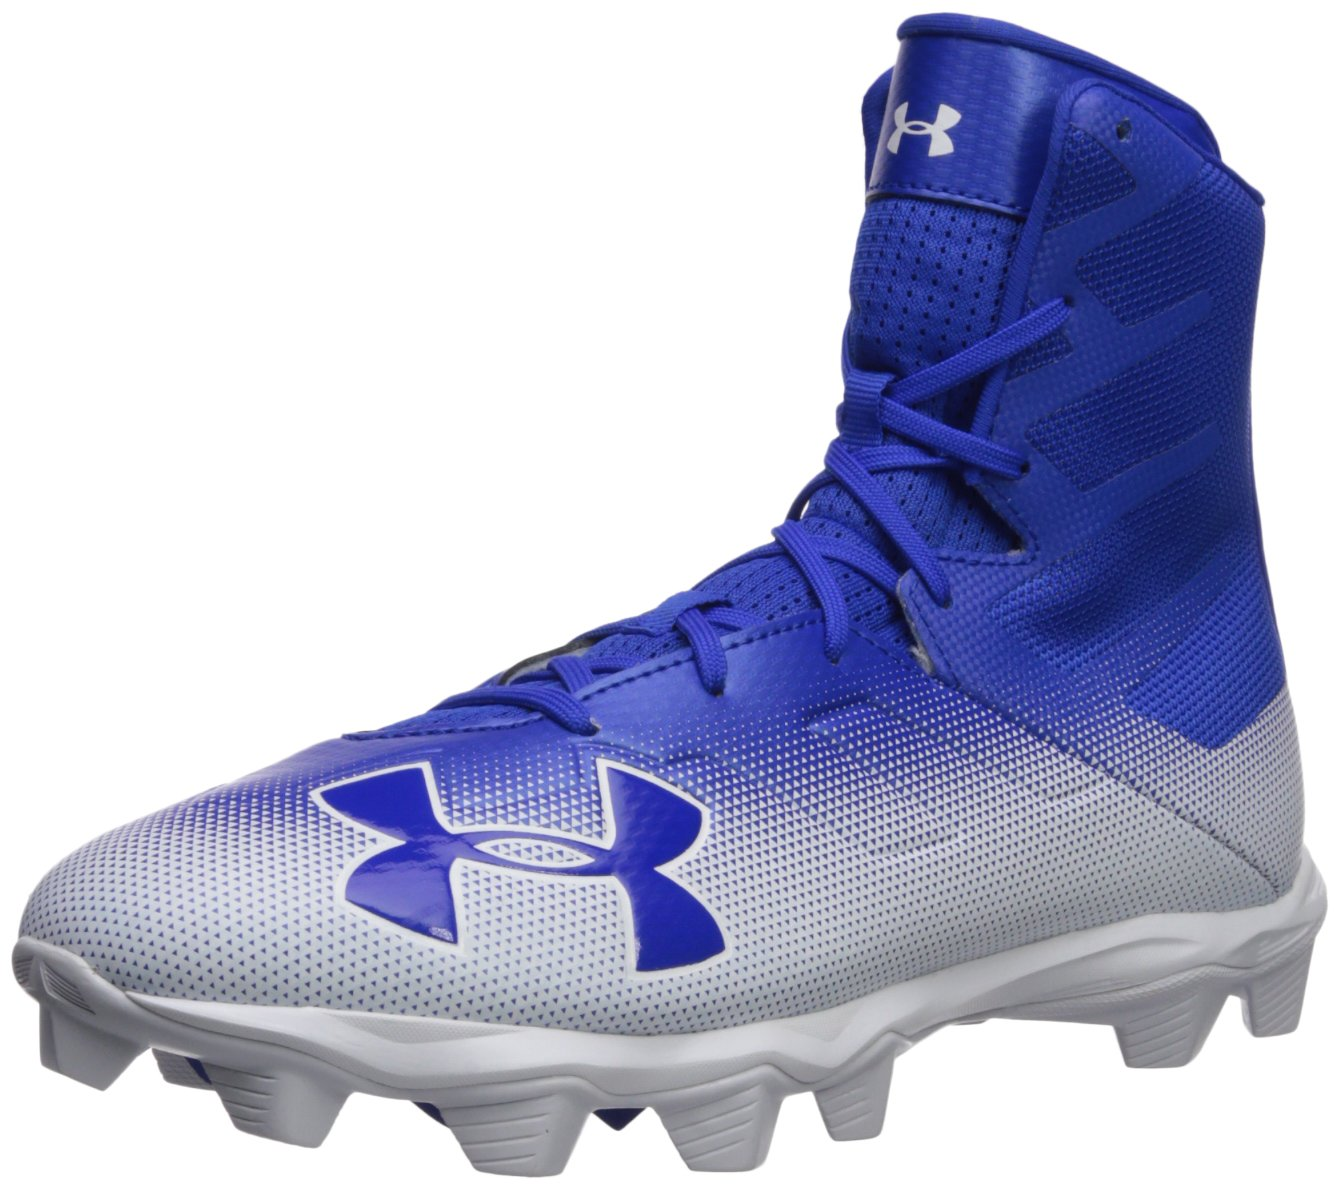 Under Armour メンズ 3000183 B0725R5Z5G 7 D(M) US|Team Royal (400)/White Team Royal (400)/White 7 D(M) US